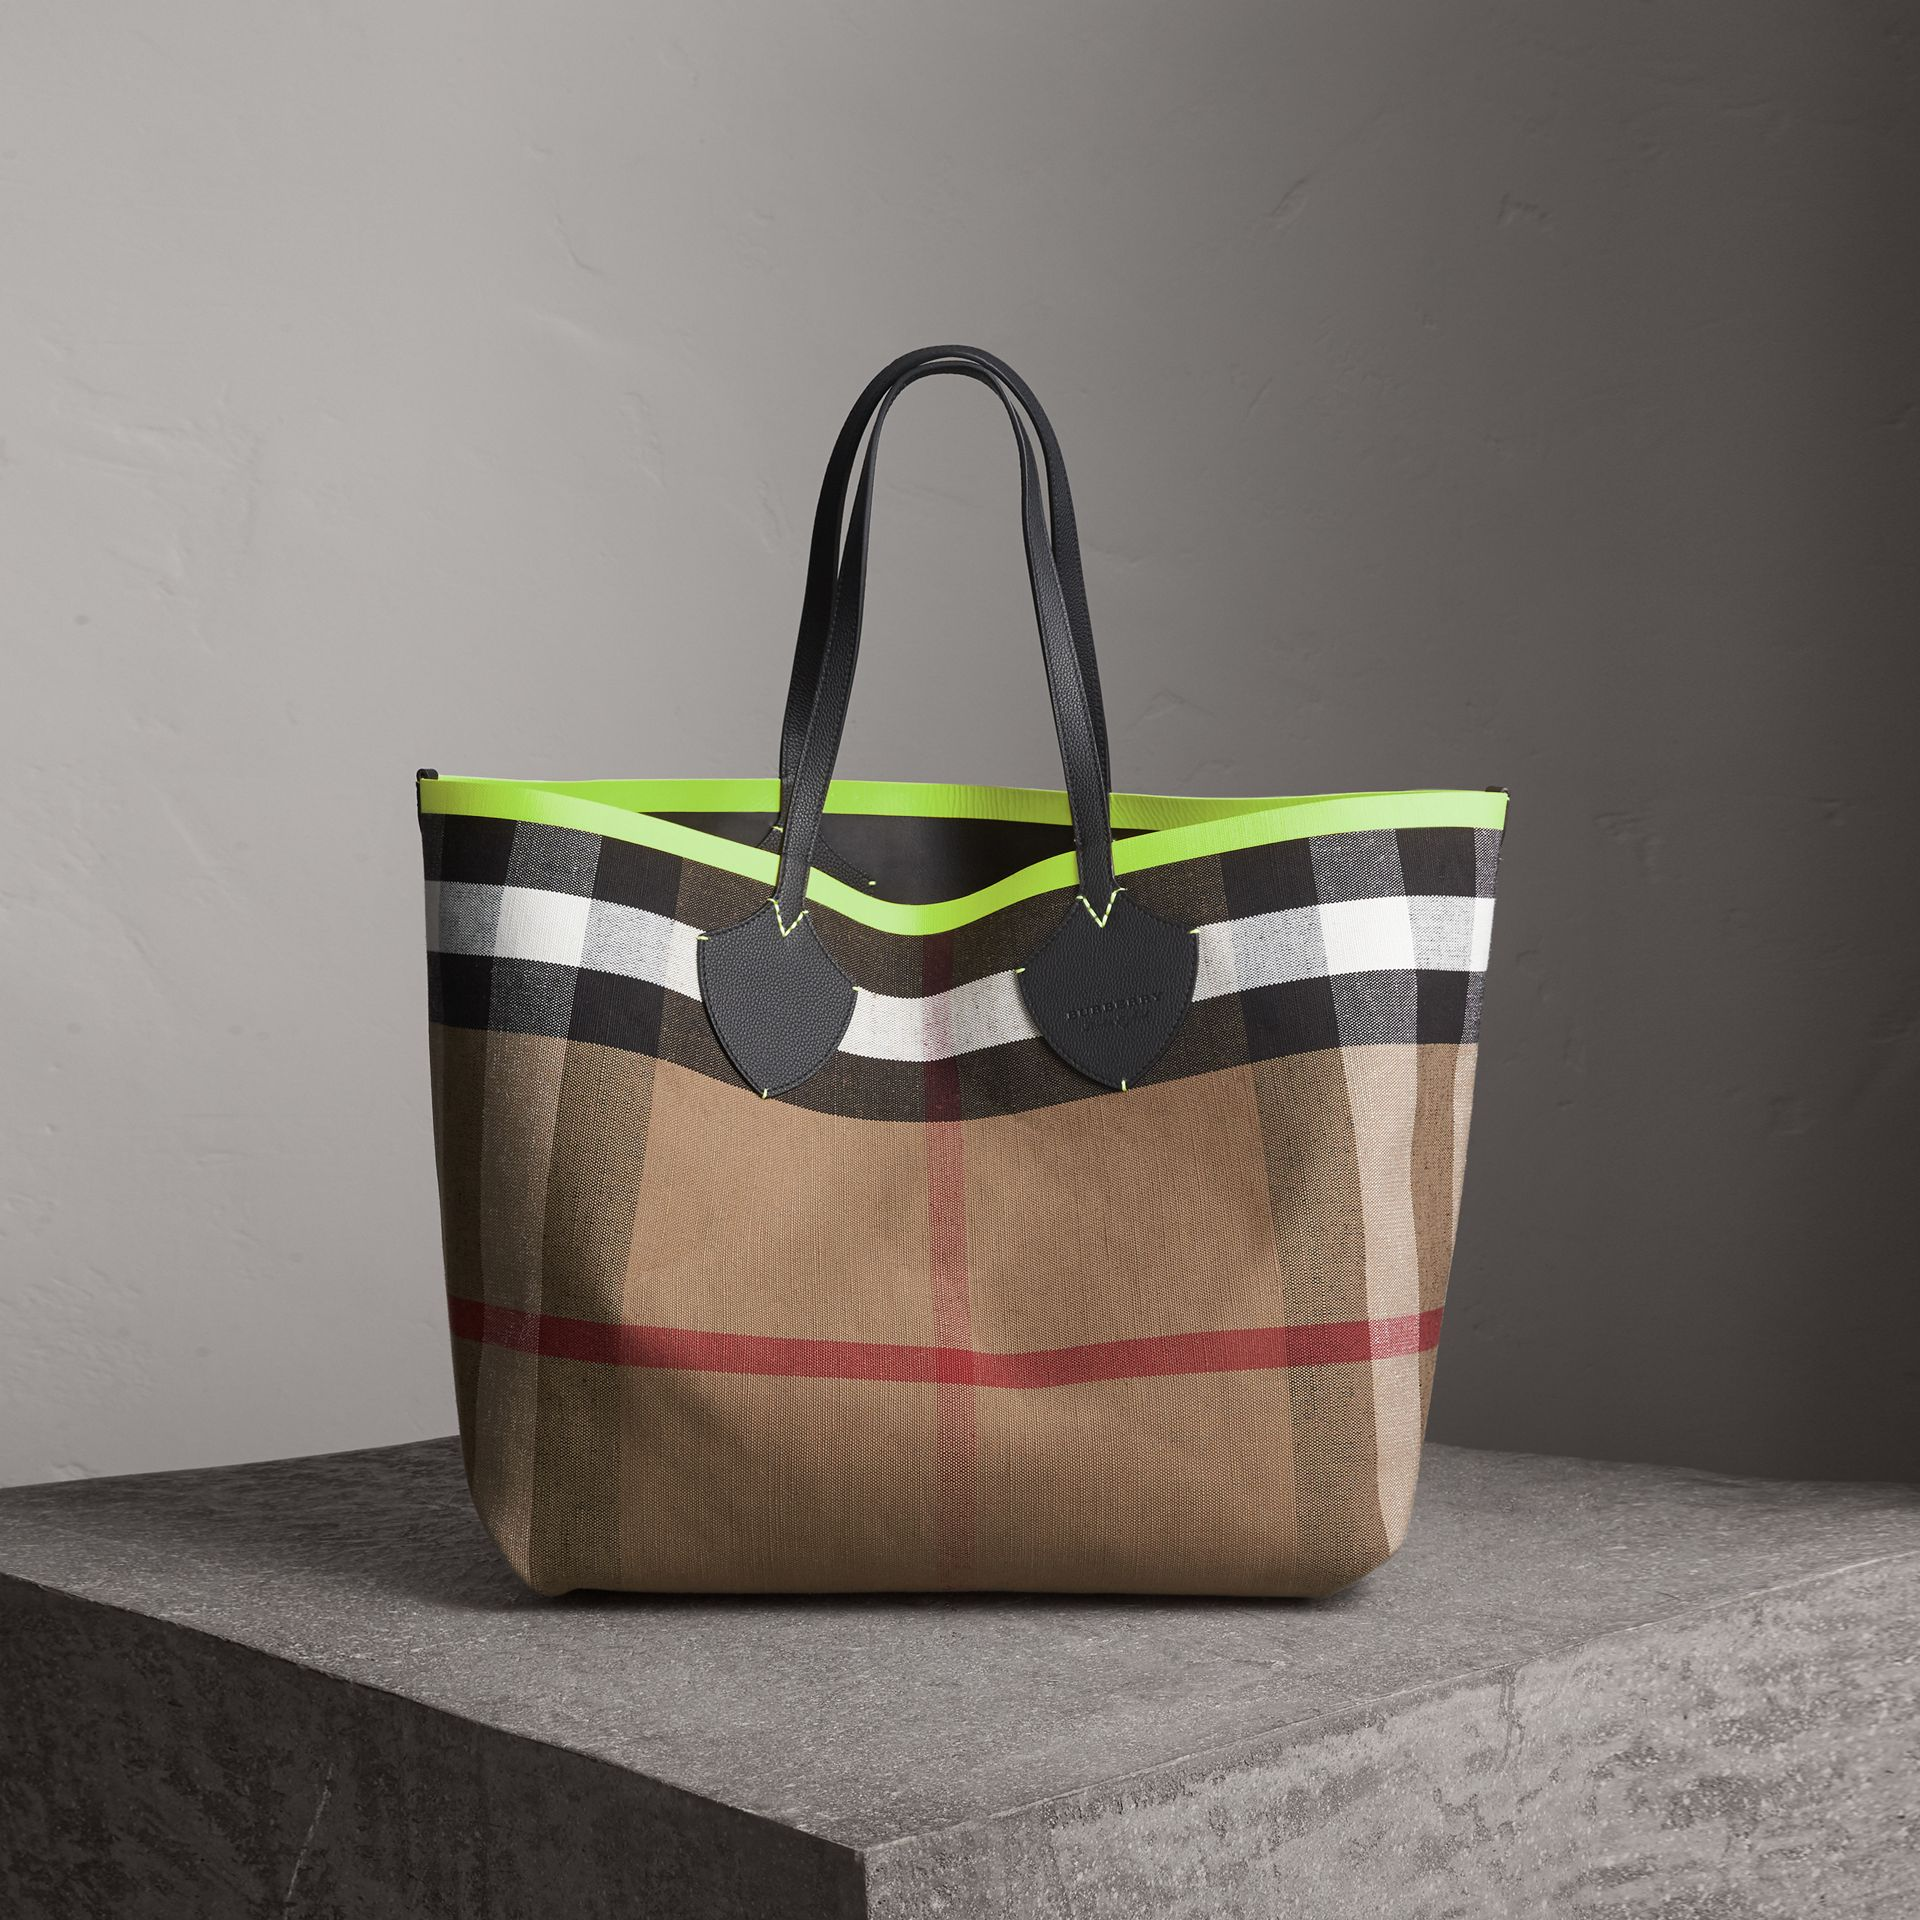 Sac tote The Giant réversible en cuir et coton Canvas check (Noir/jaune Néon) | Burberry Canada - photo de la galerie 0